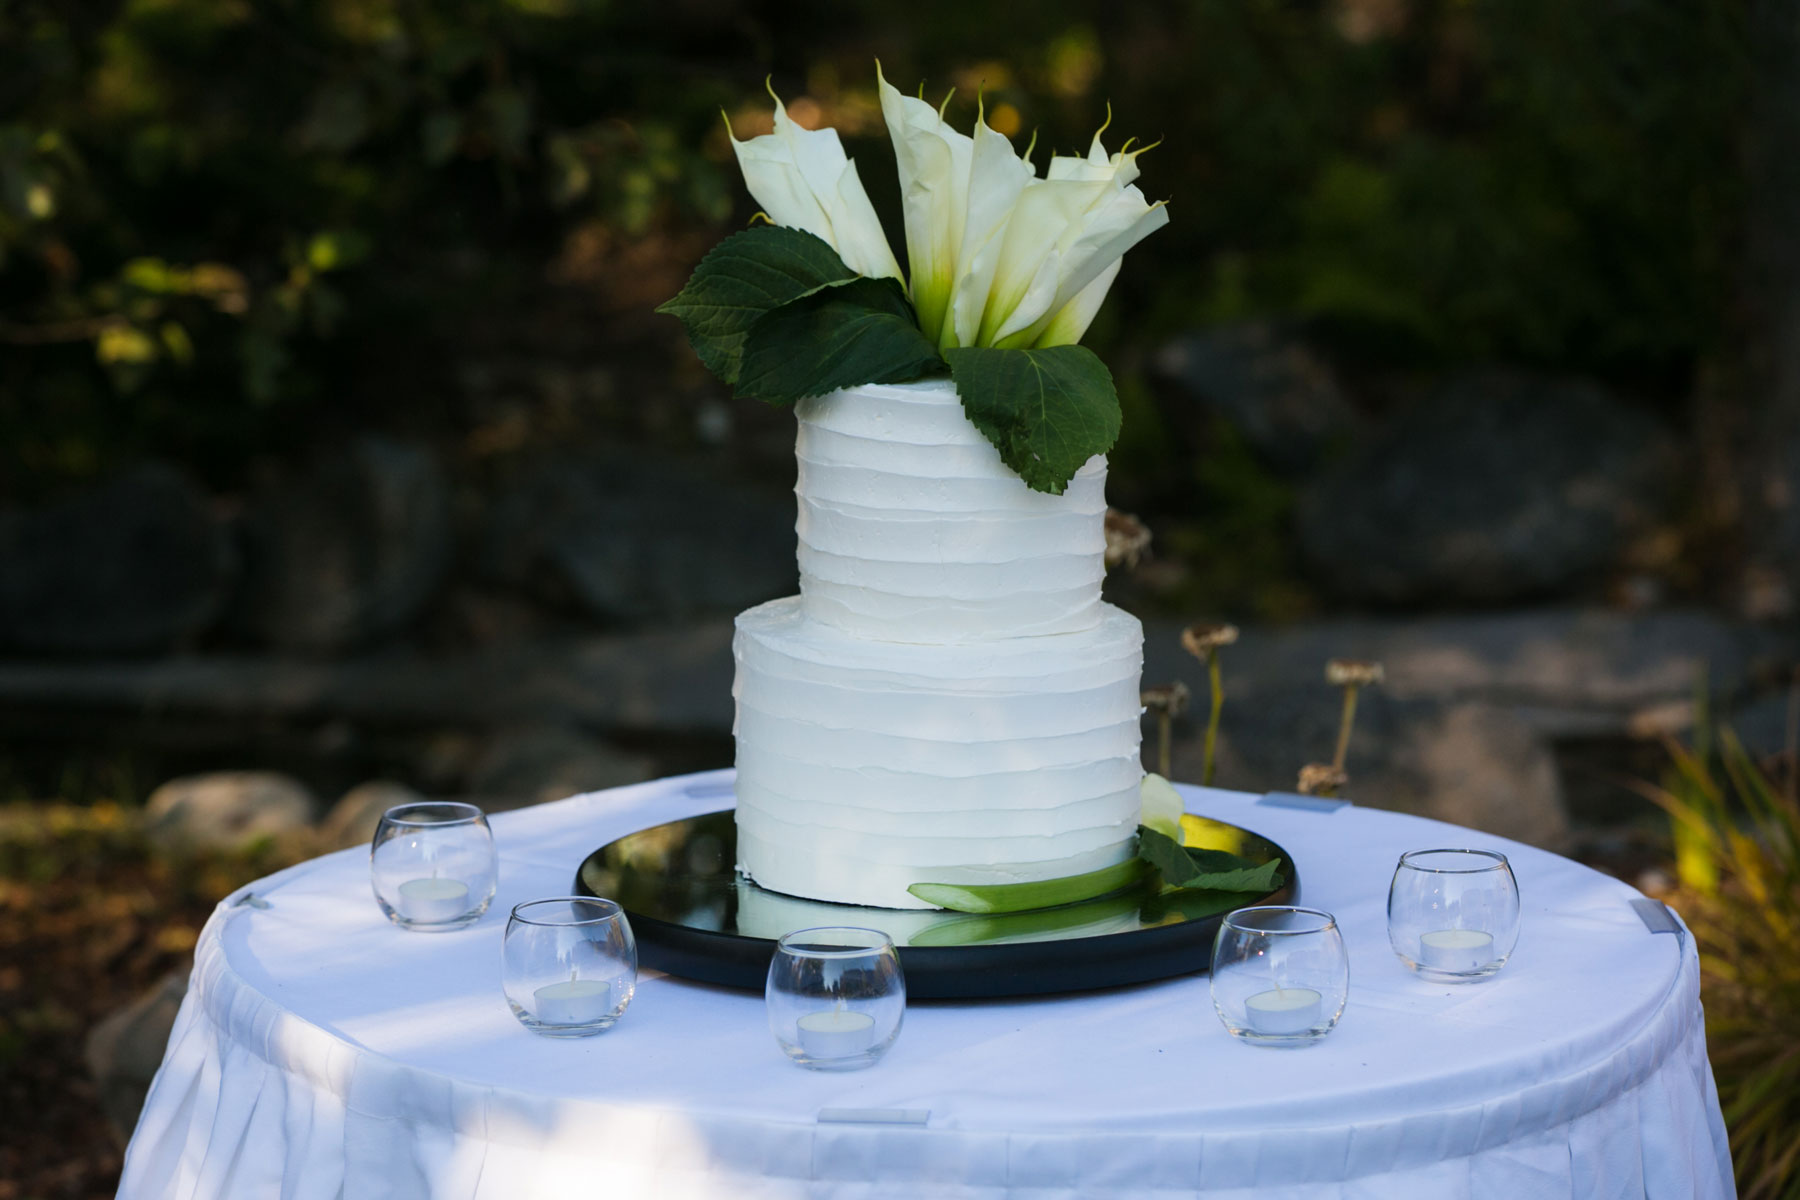 hyatt-lake-tahoe-wedding-tahoe-25-wedding